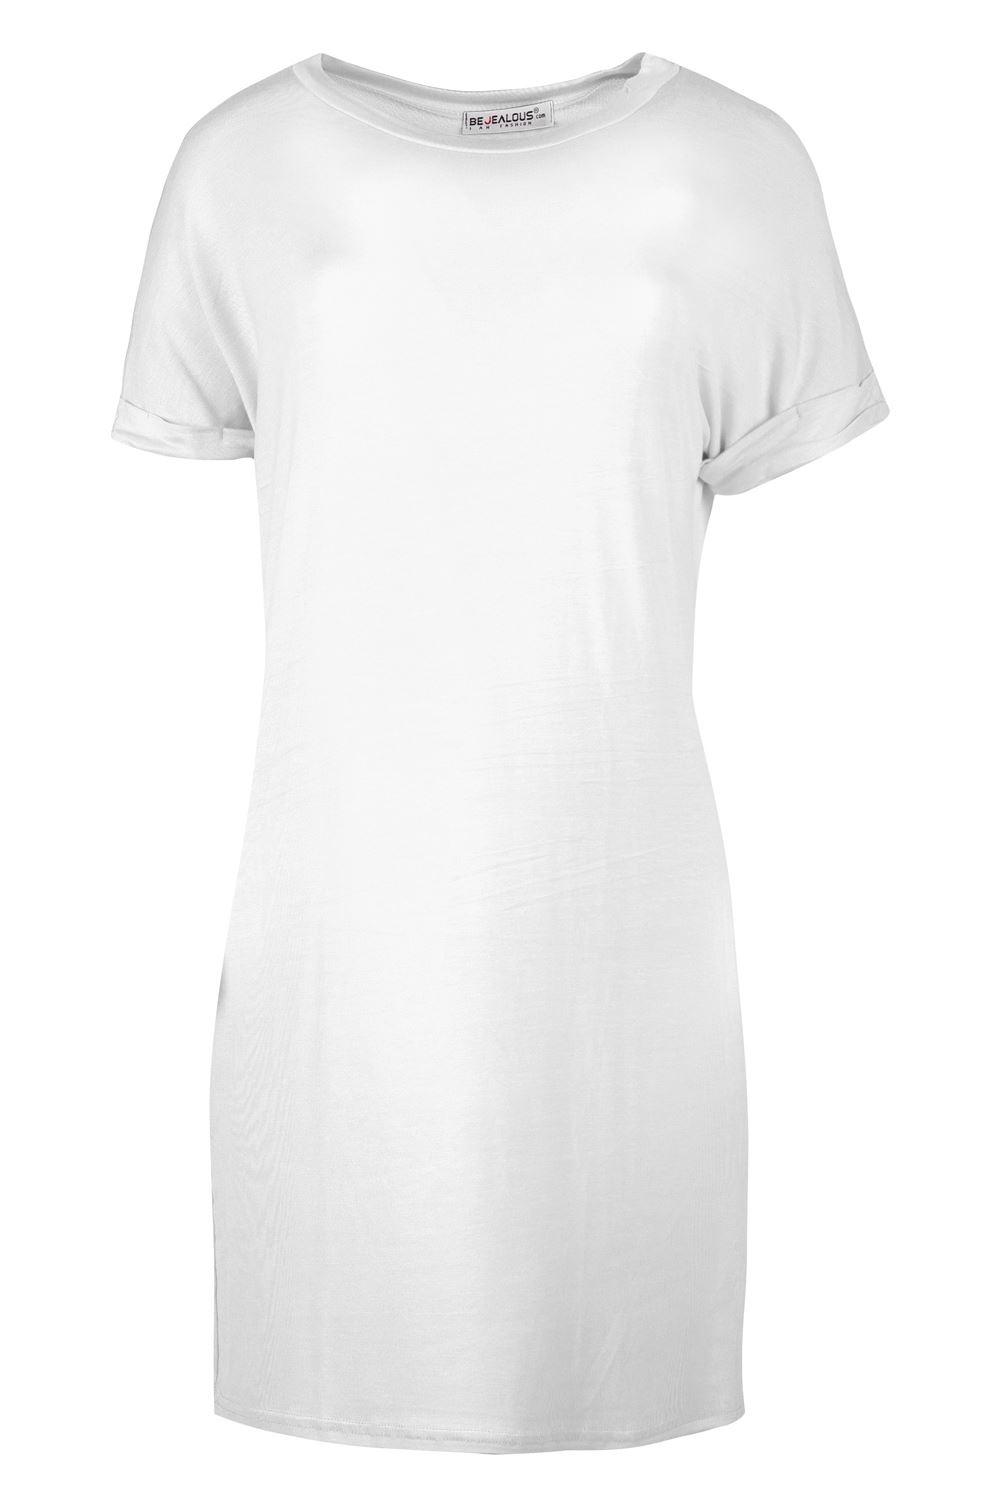 Womens-Curved-Hem-Round-Neck-Short-Sleeve-WIFEY-T-Shirt-Tunic-Oversized-Dress